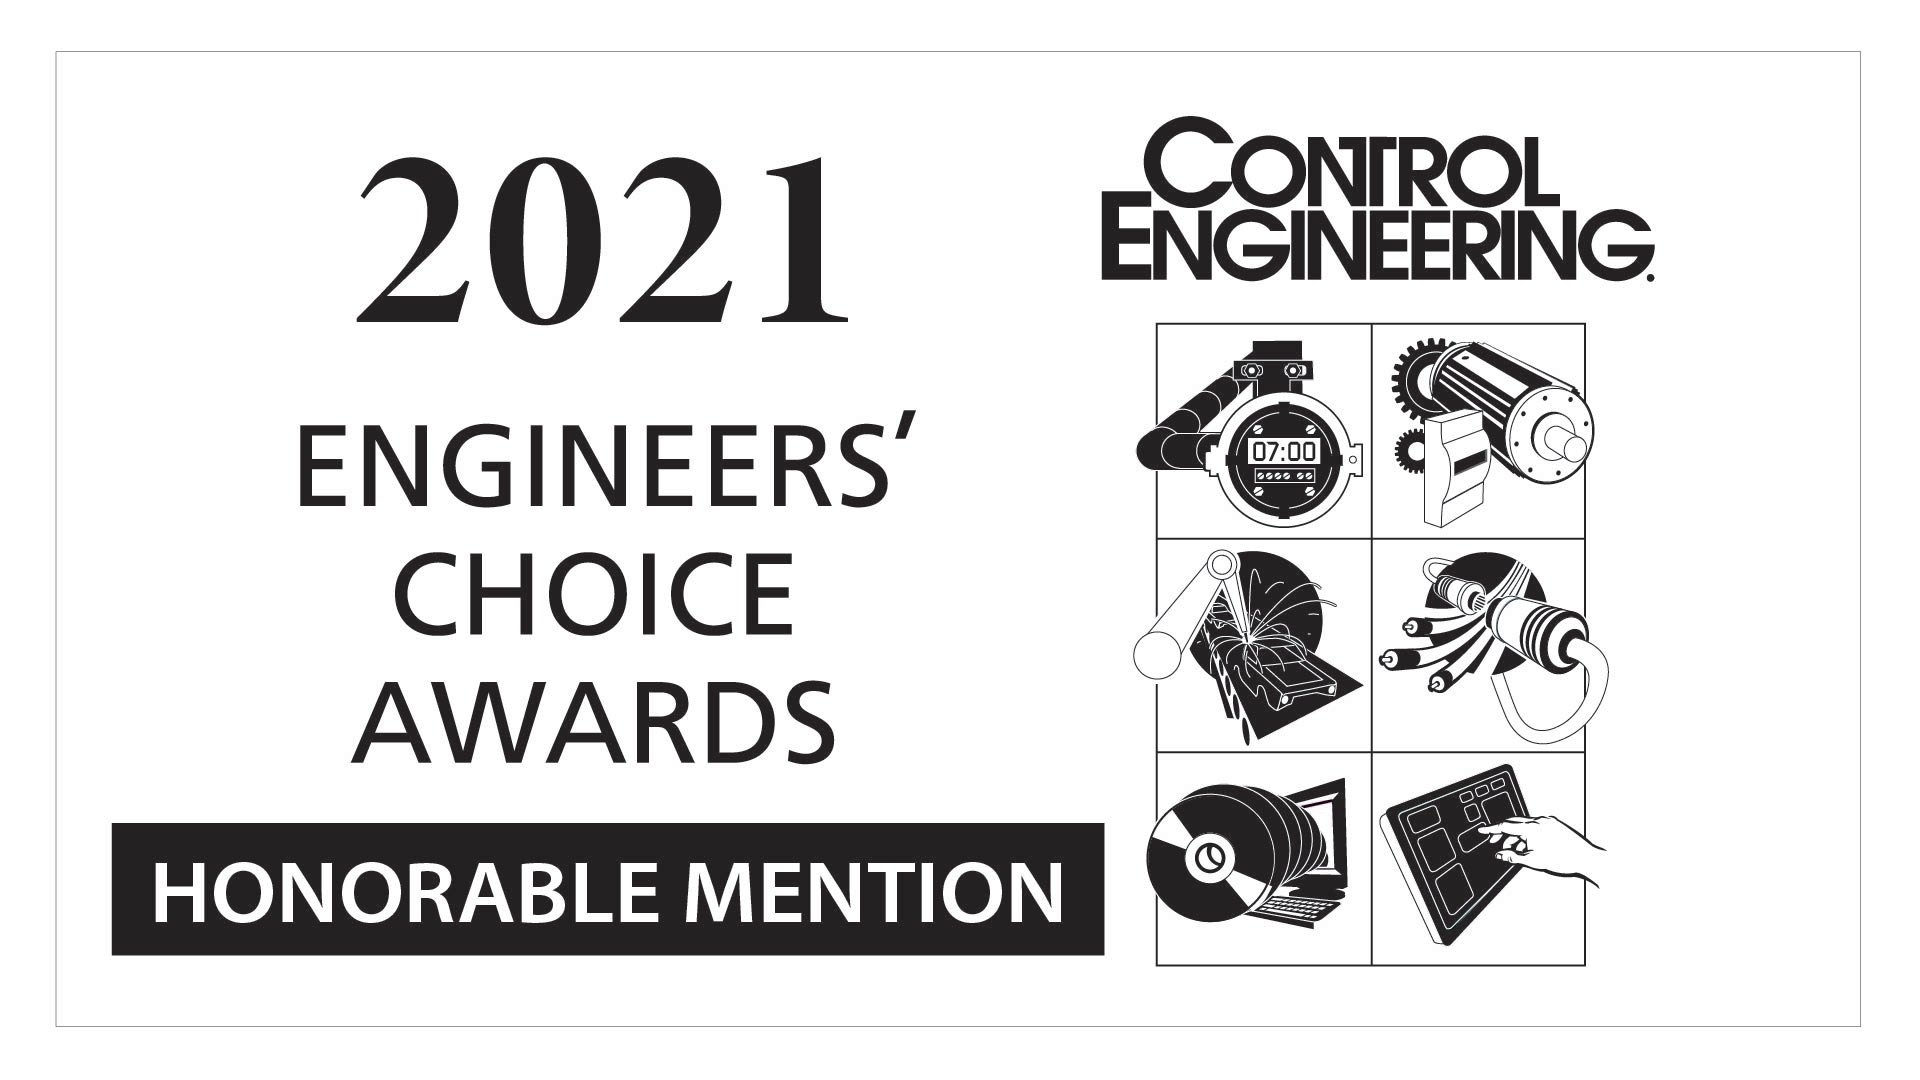 2021 Control Engineering Engineers' Choice Award Honorable Mention Logo